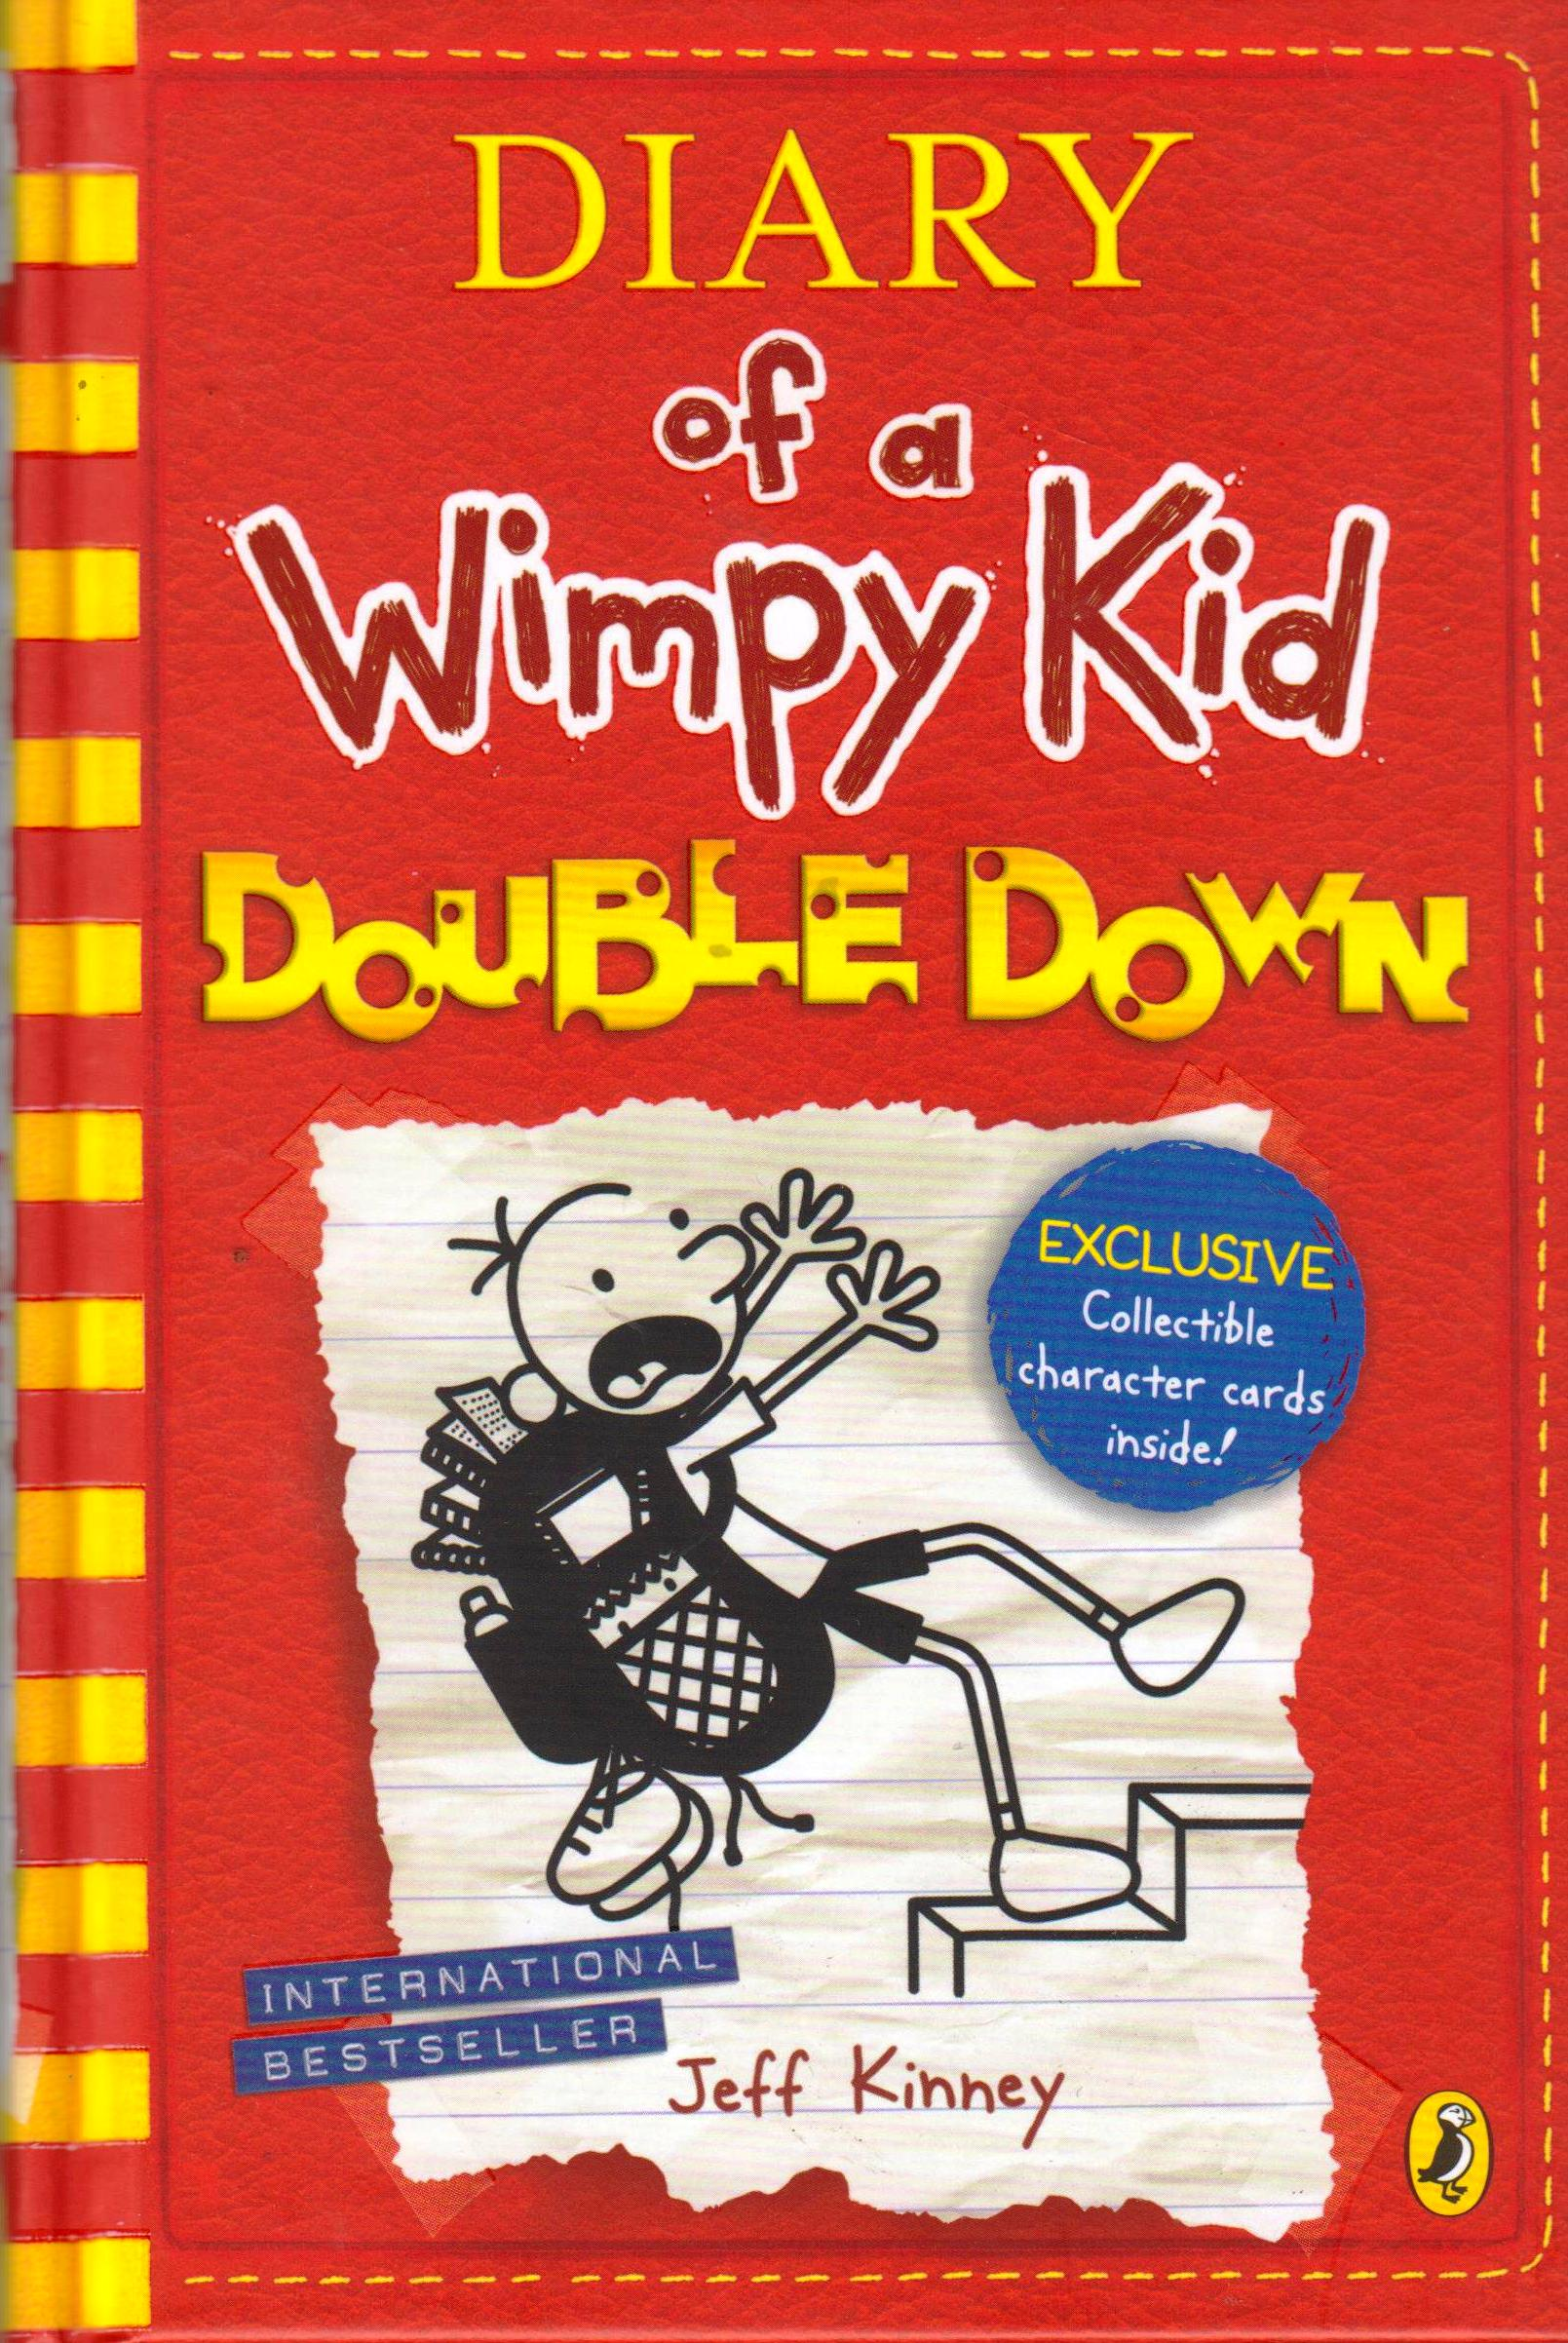 Image result for diary of a wimpy kid double down by jeff kinney